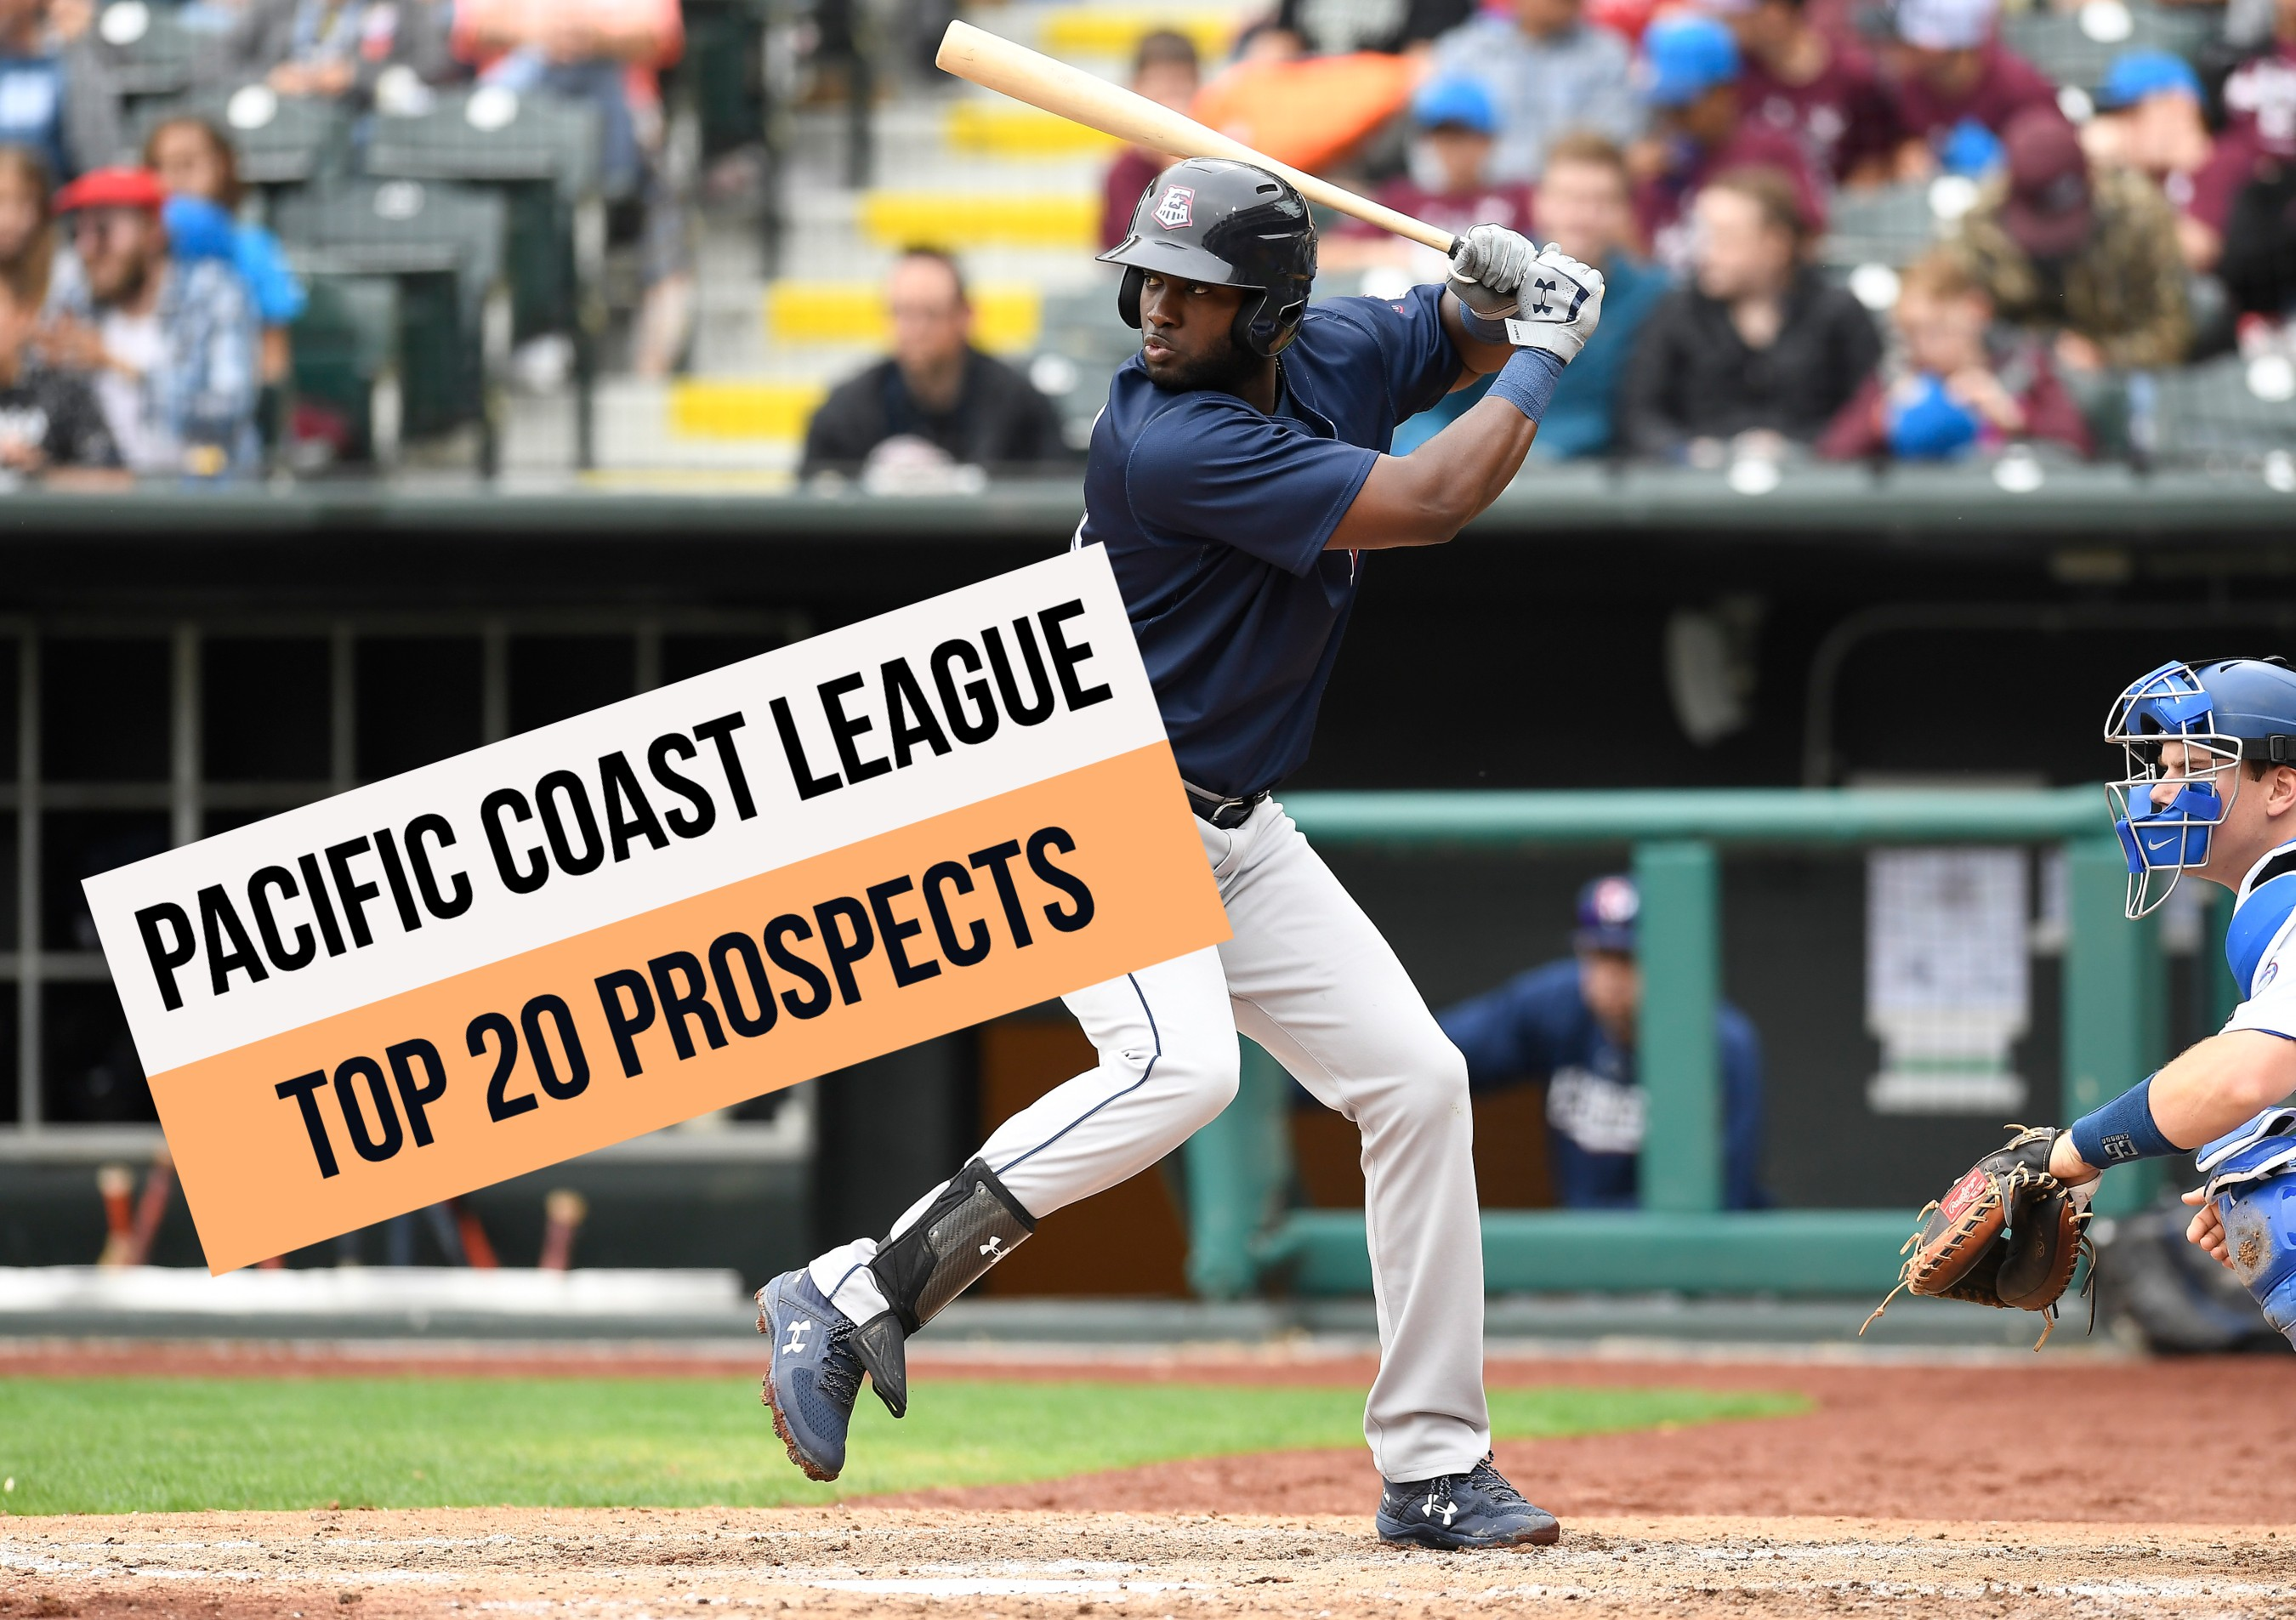 Pacific Coast League Top 20 Prospects For 2019